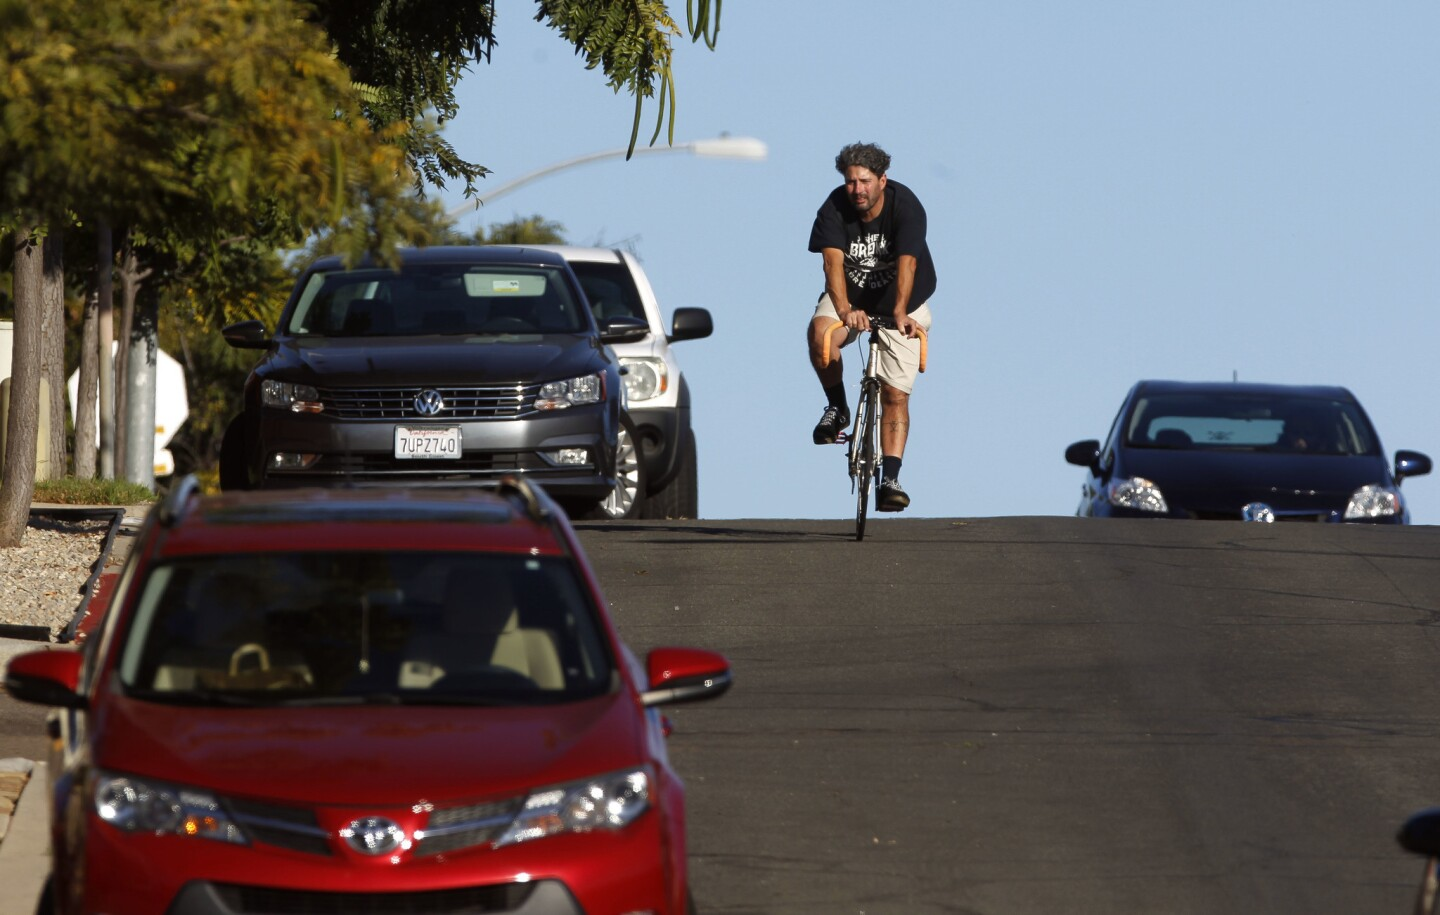 SAN DIEGO, October 19, 2018 | A cyclist rides west on Meade Avenue, where bike lanes are planned to be placed, in San Diego on Friday. | Photo by Hayne Palmour IV/San Diego Union-Tribune/Mandatory Credit: HAYNE PALMOUR IV/SAN DIEGO UNION-TRIBUNE/ZUMA PRESS San Diego Union-Tribune Photo by Hayne Palmour IV copyright 2018